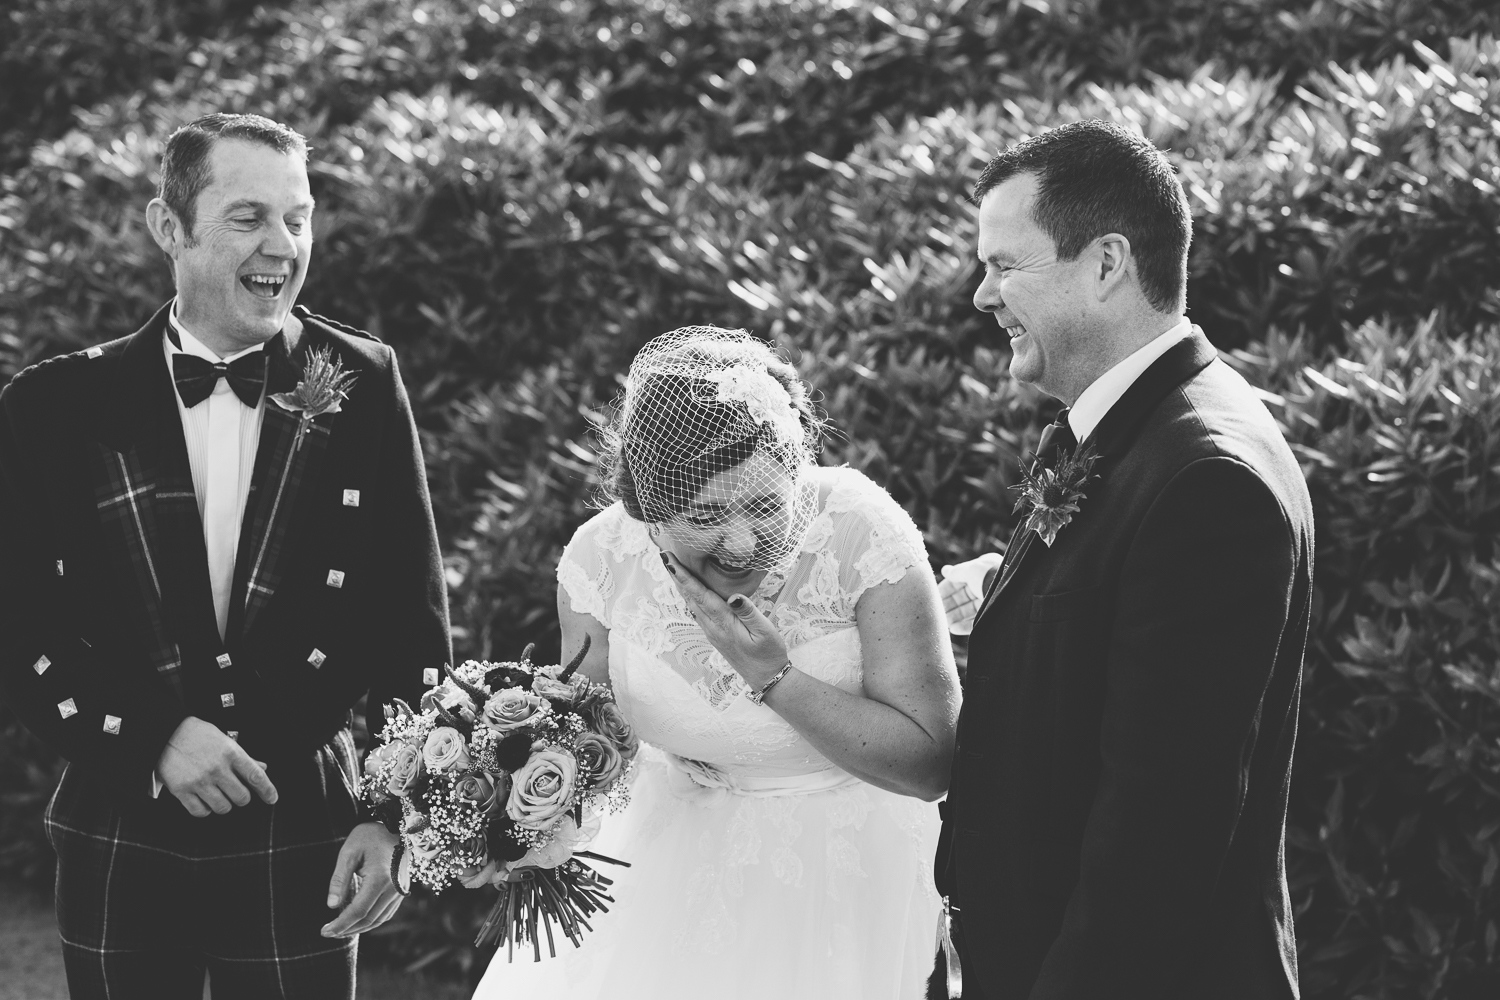 Aberdeen wedding photographer, Aberdeen wedding photography, wedding photography Aberdeen, wedding photographers in Aberdeenshire, wedding photographers Scotland